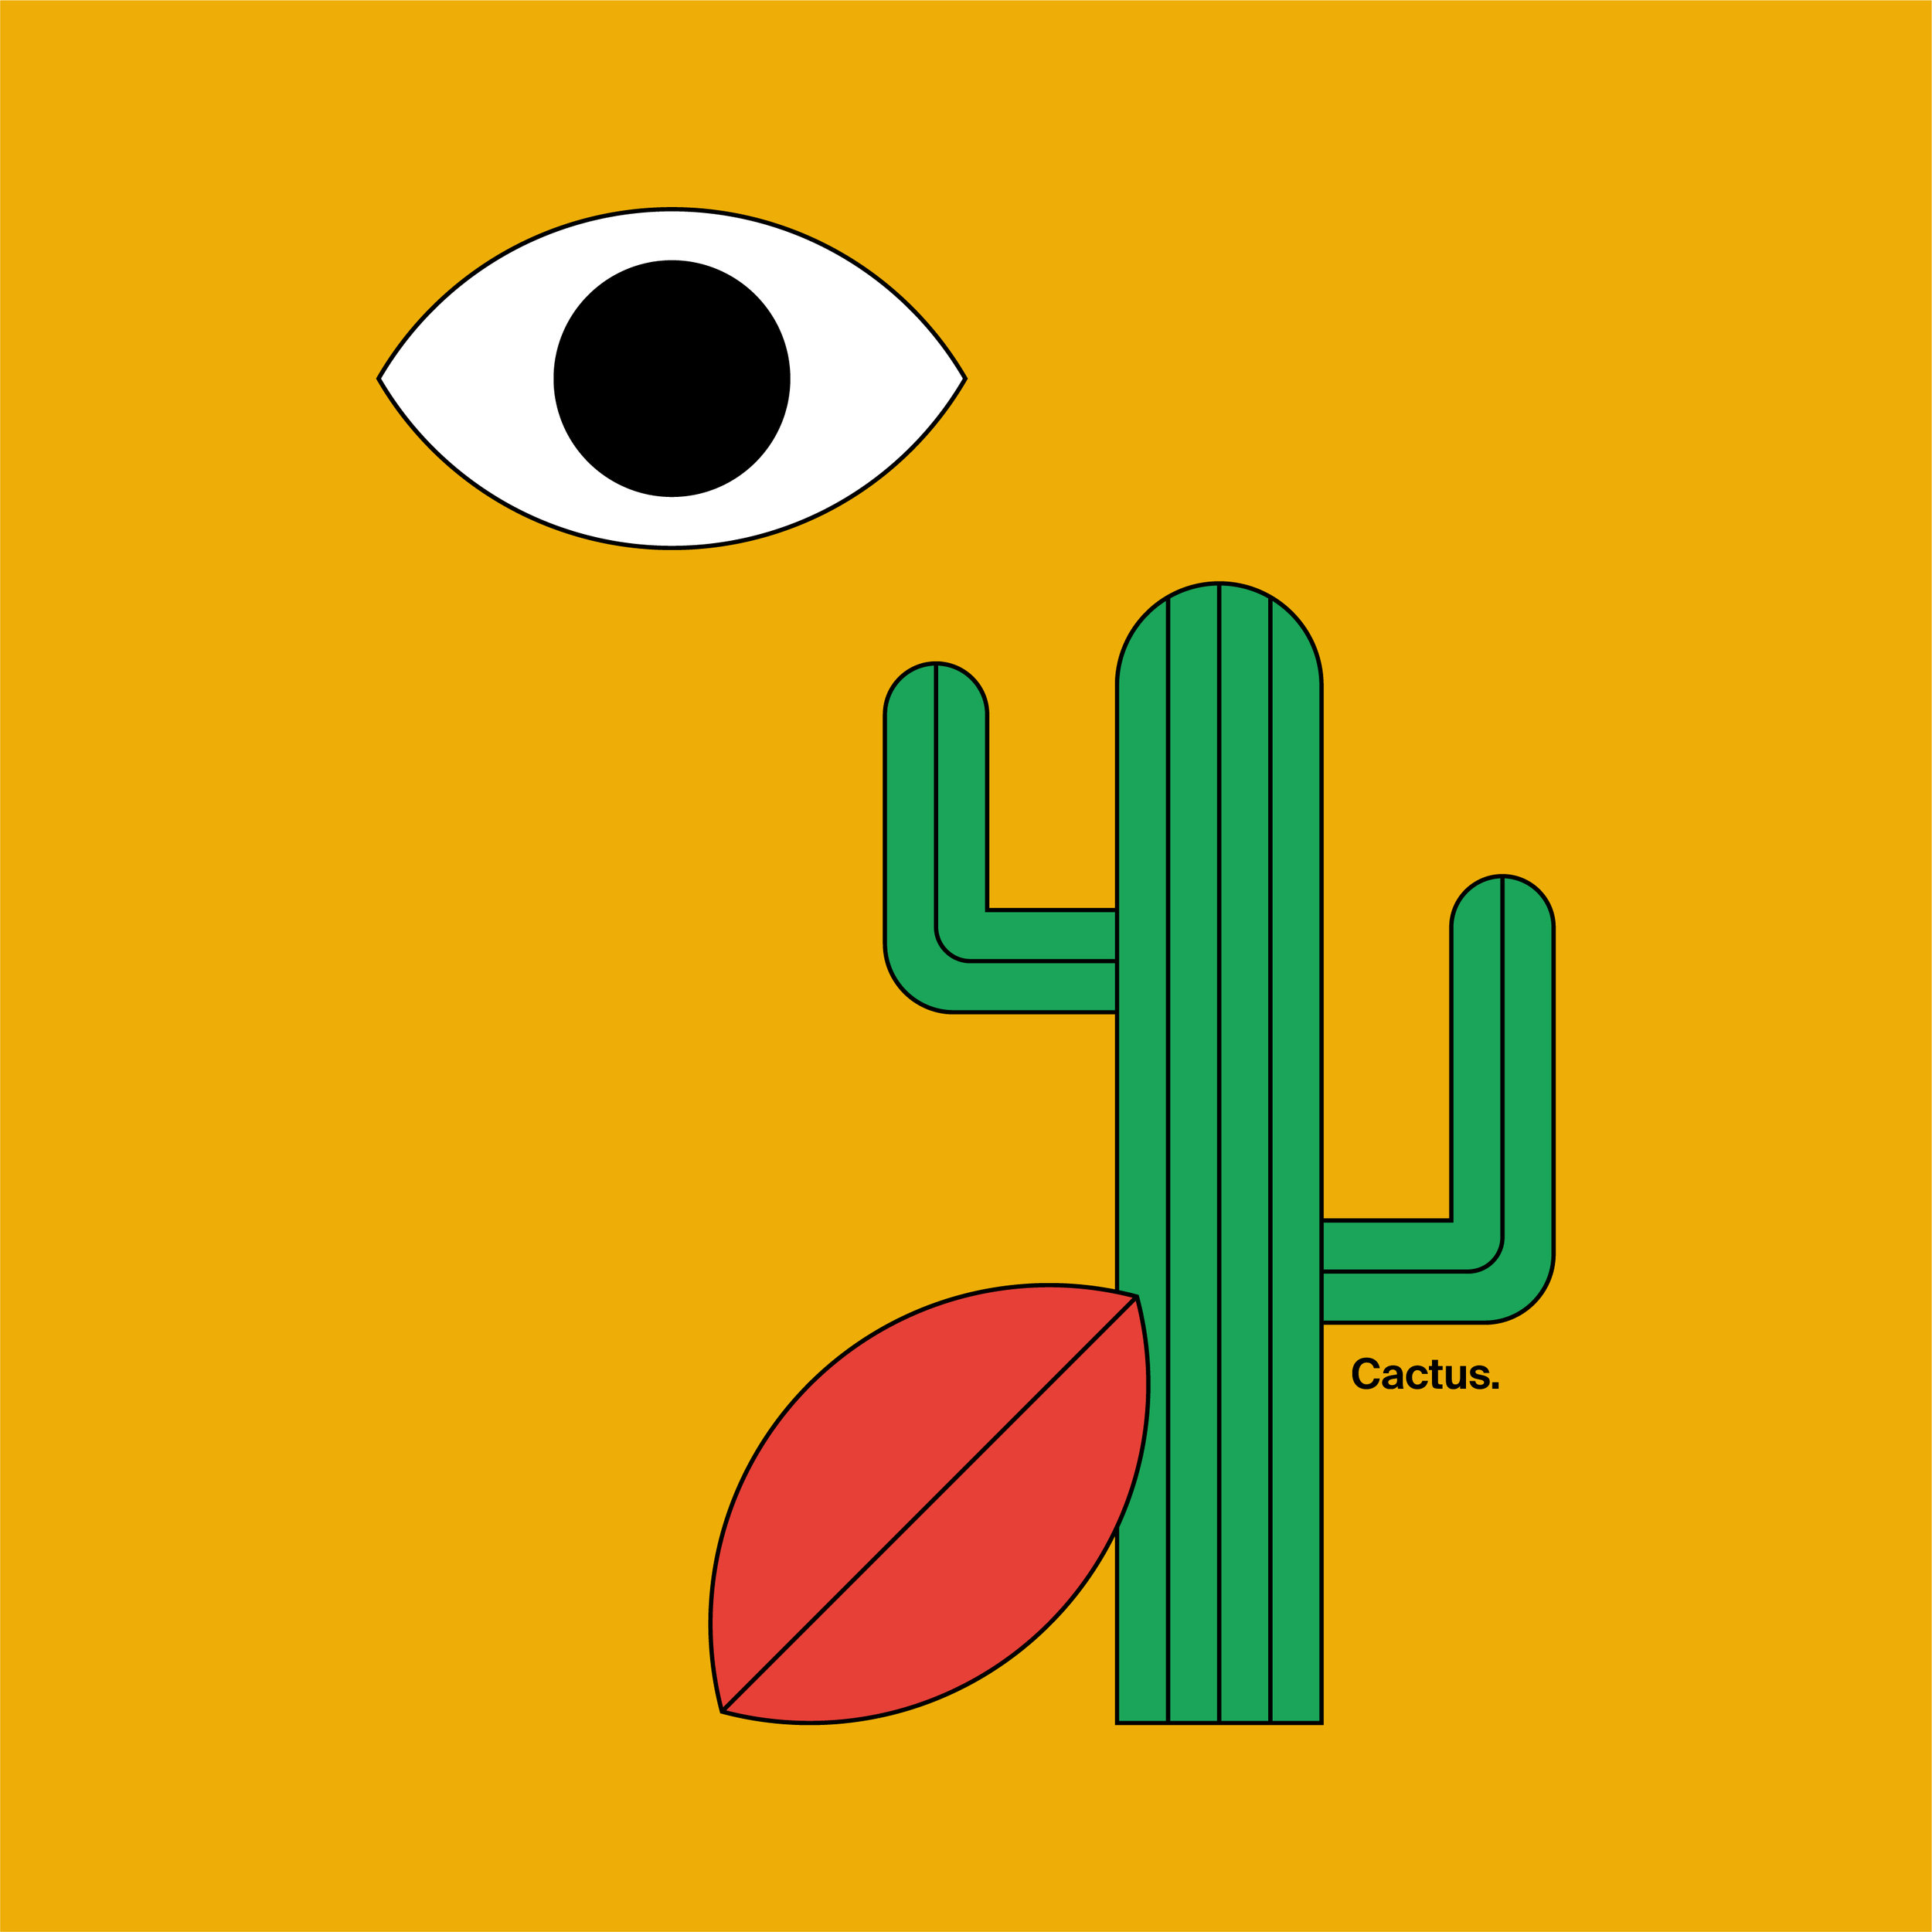 cactus_illustration_instagram_post_03.jpg